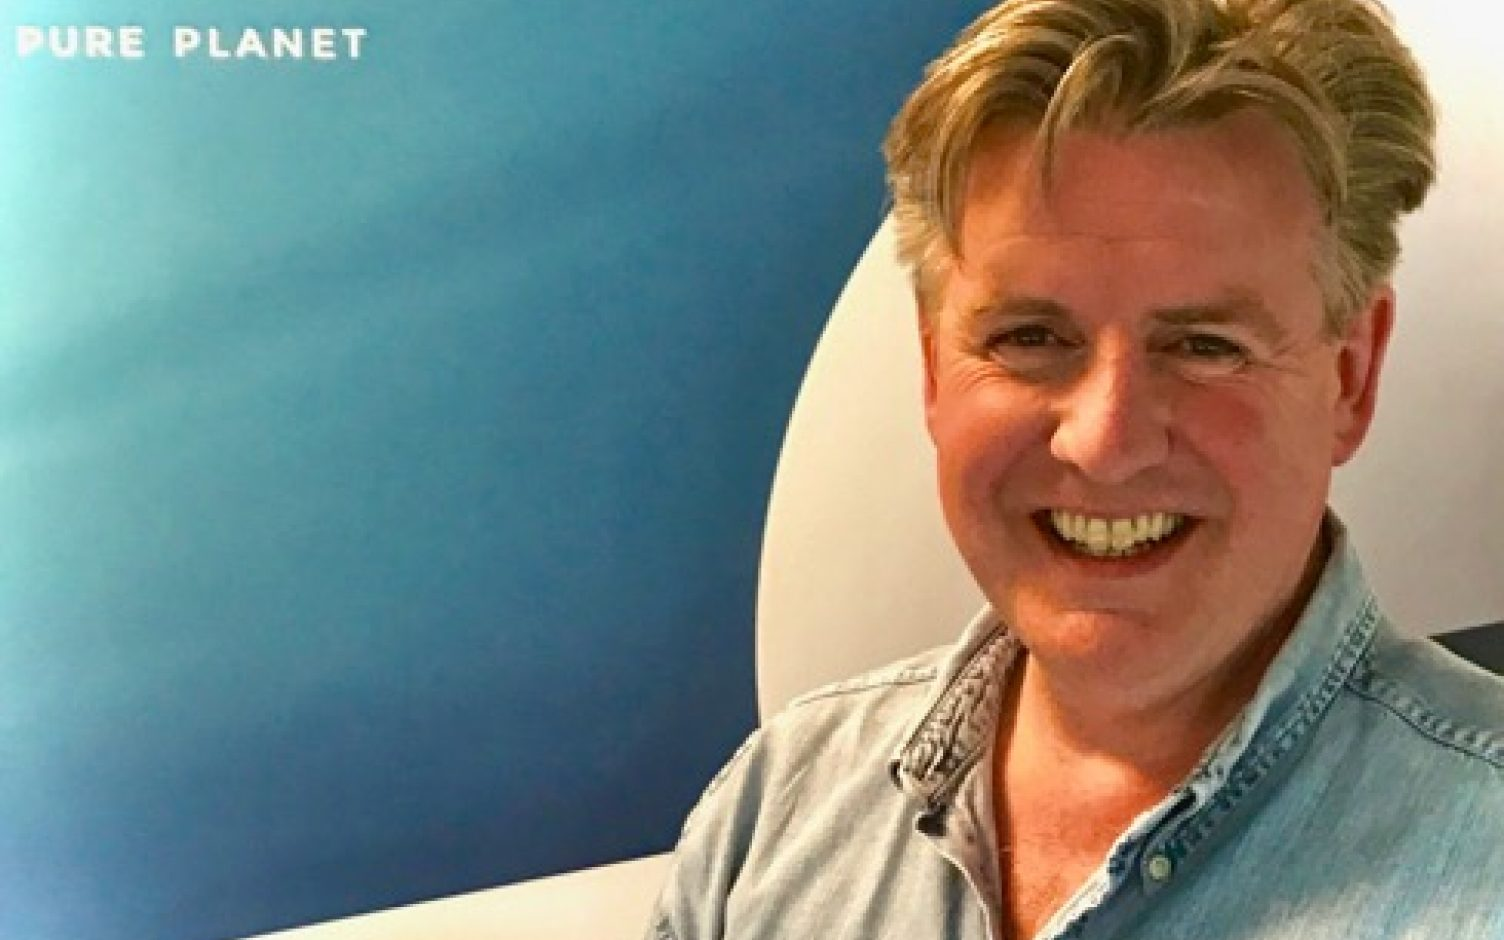 A double no-brainer: Steven Day explains Pure Planet's clean green digital offering